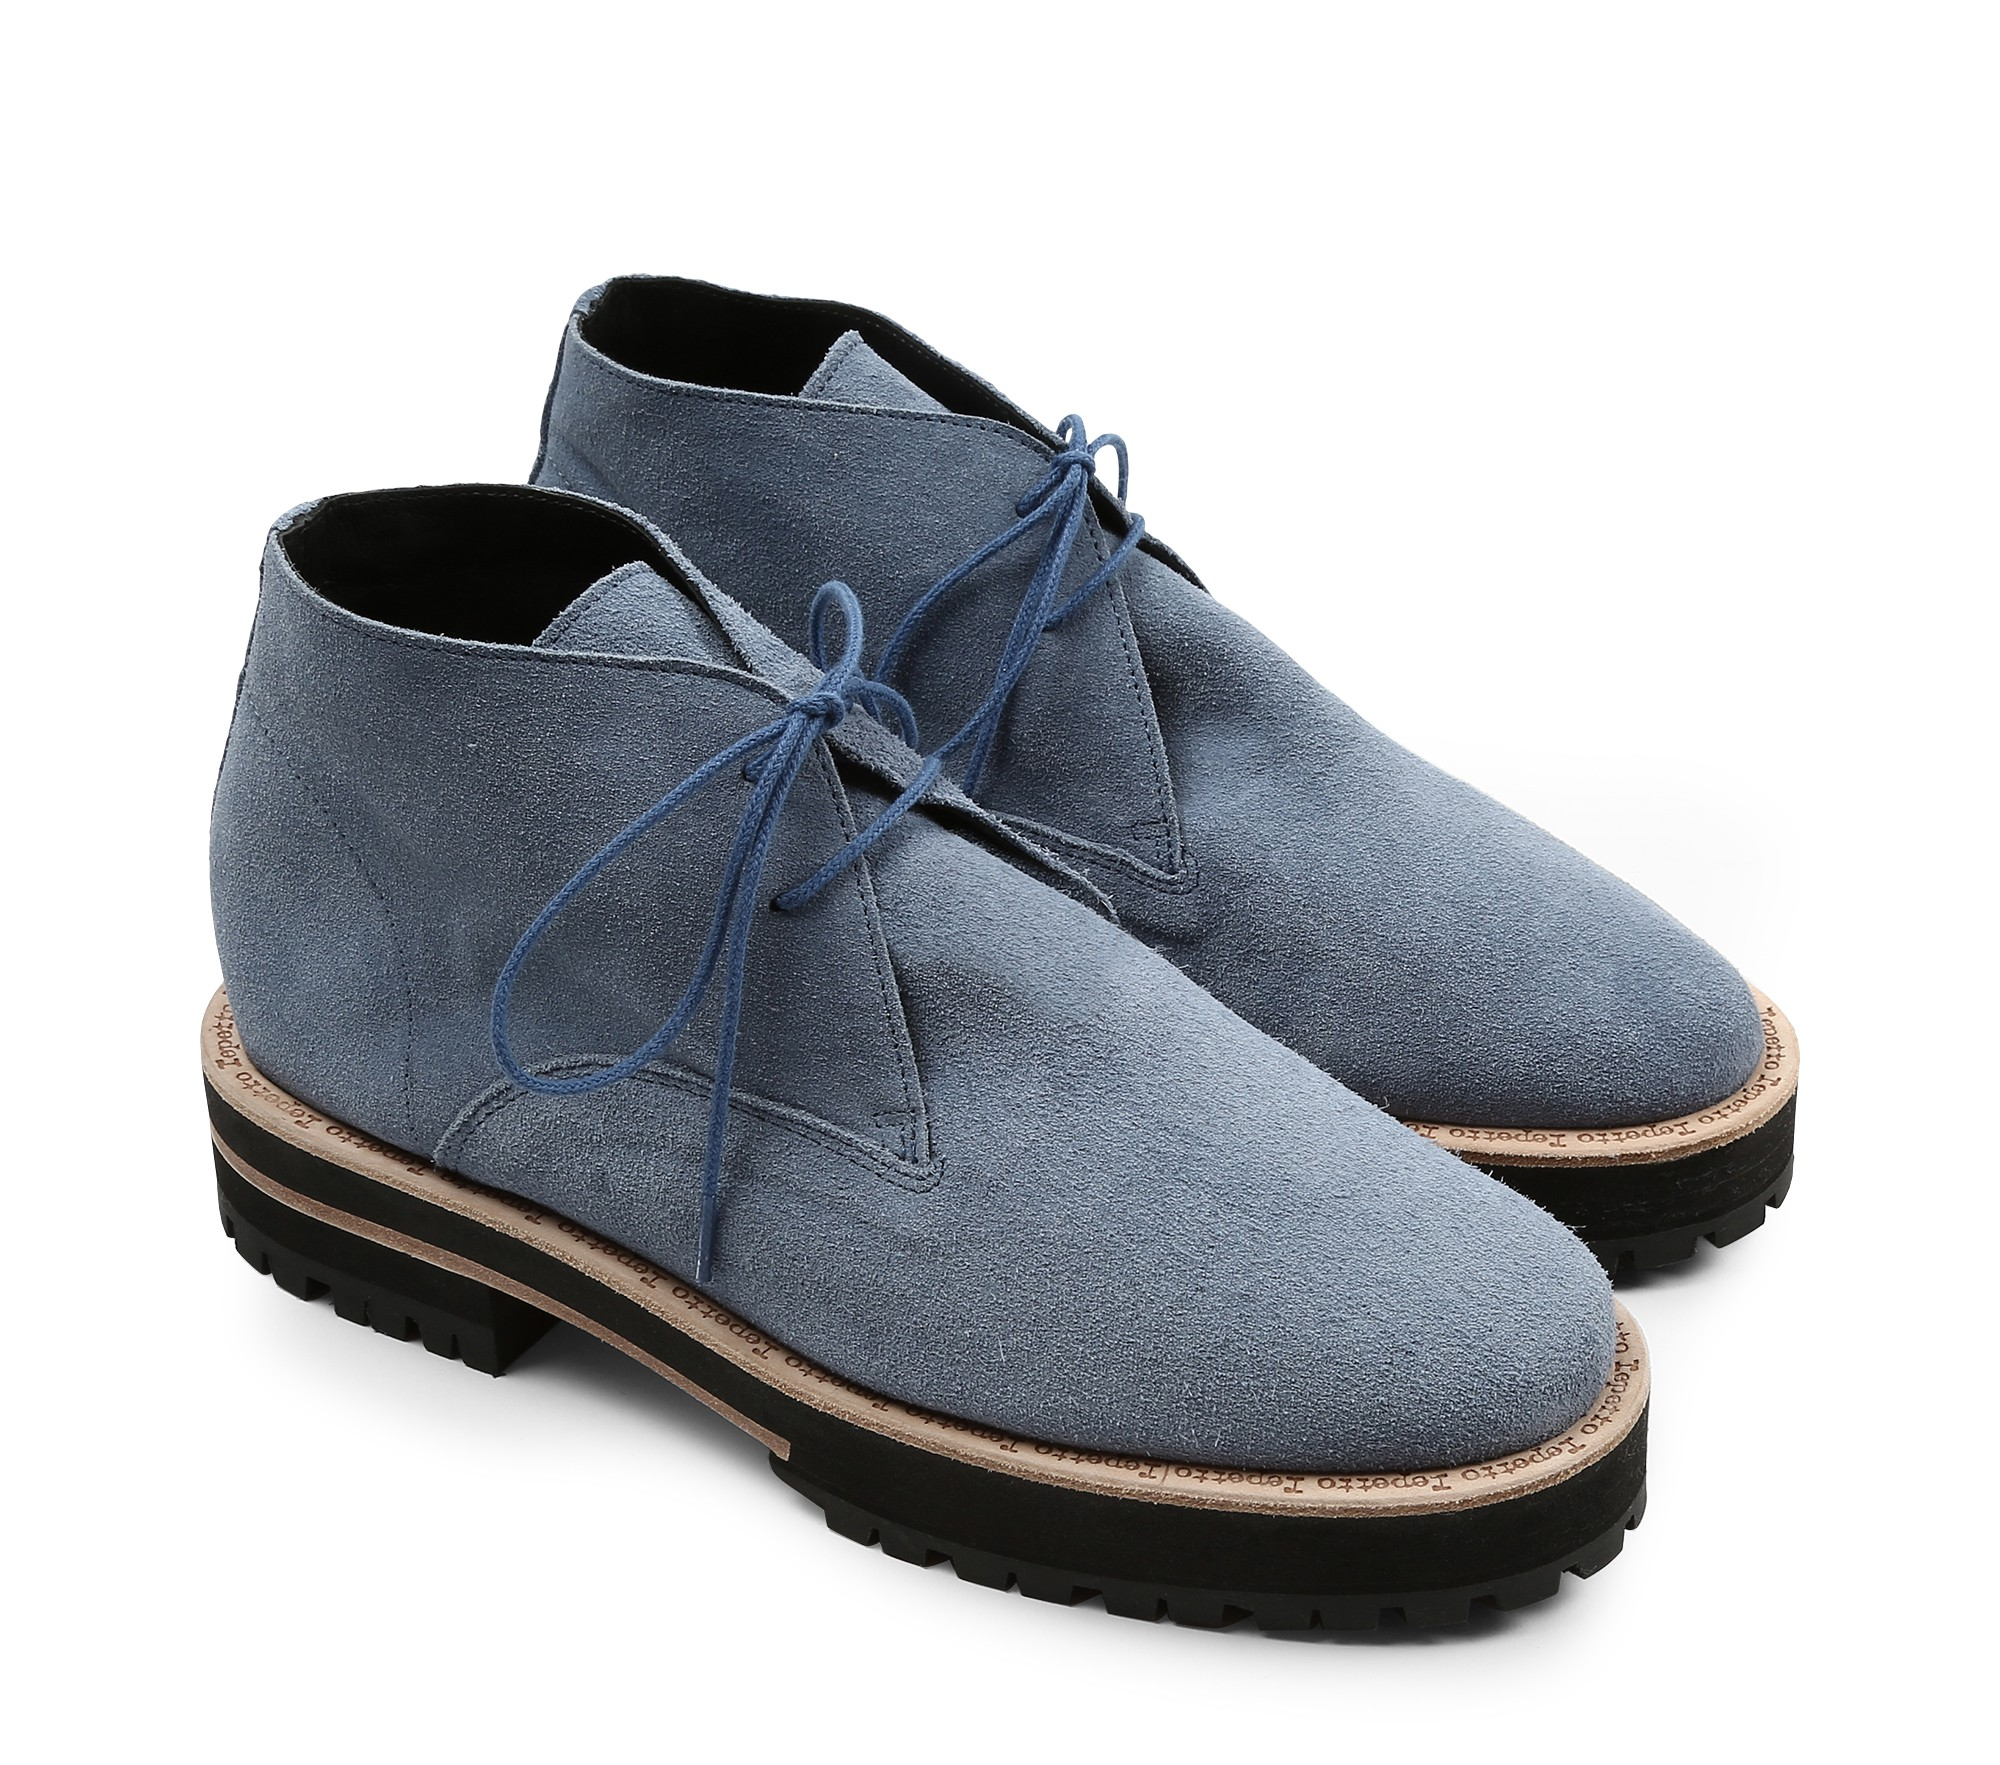 Icare oxford shoe